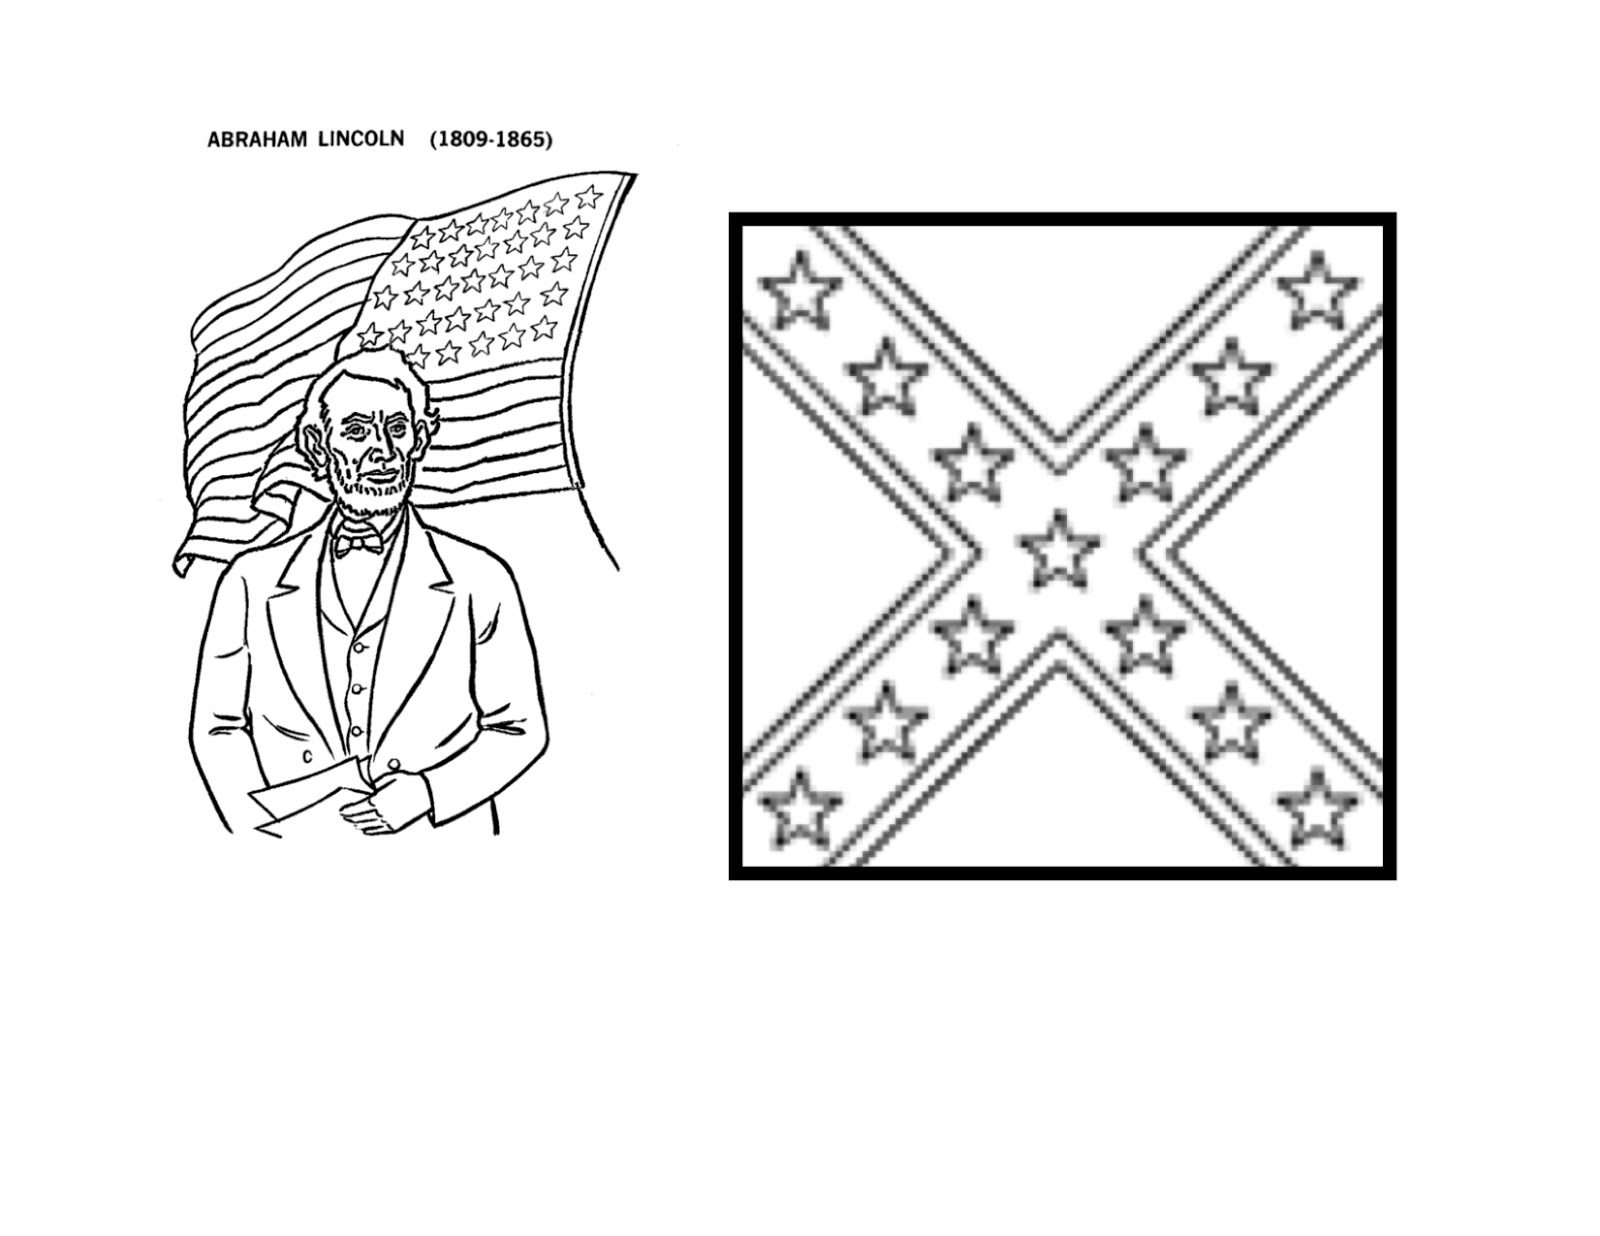 rebel flag coloring pages confederate flag sheet coloring pages flag pages rebel coloring